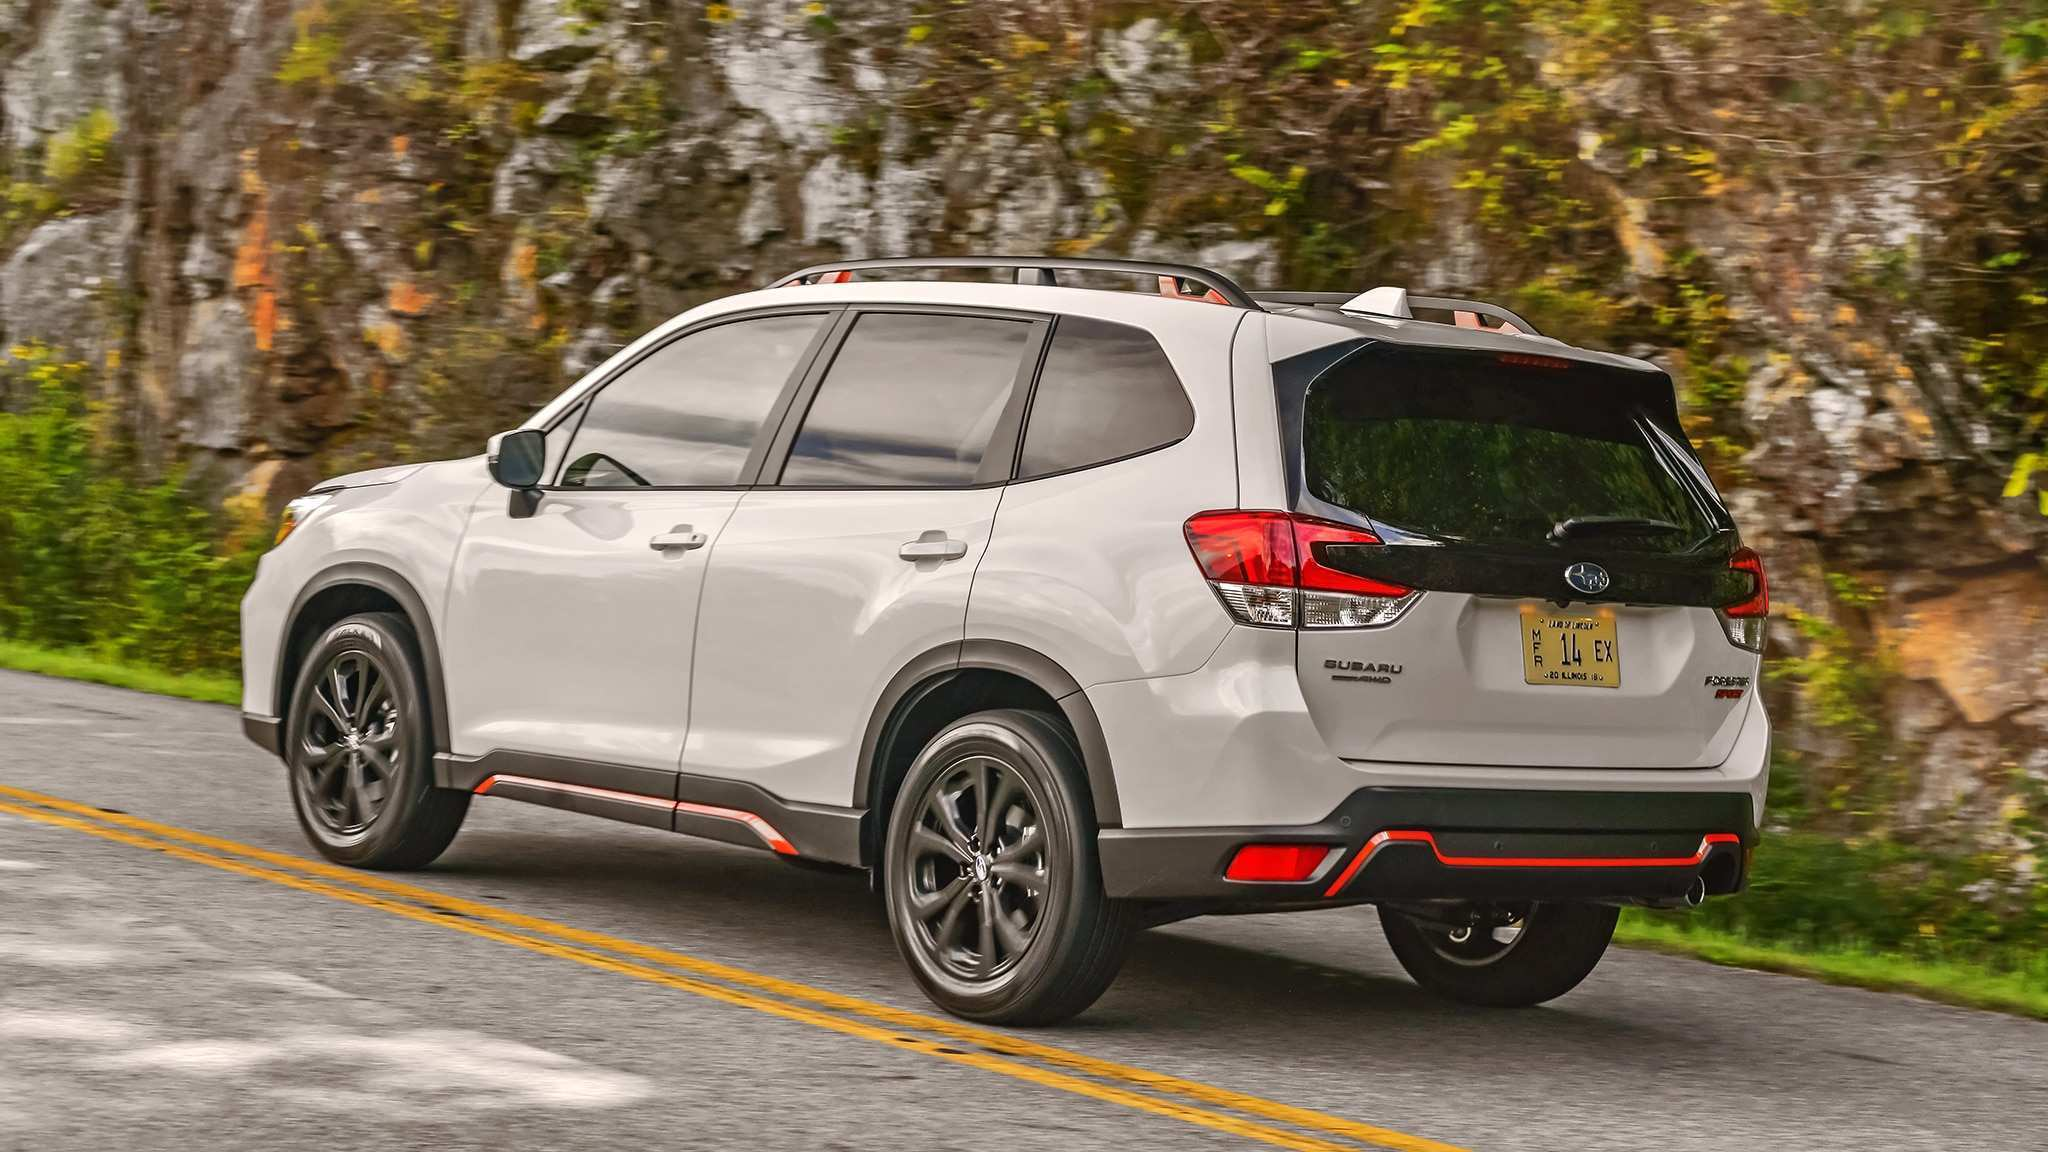 48 Gallery of 2019 Subaru Forester Debut History by 2019 Subaru Forester Debut